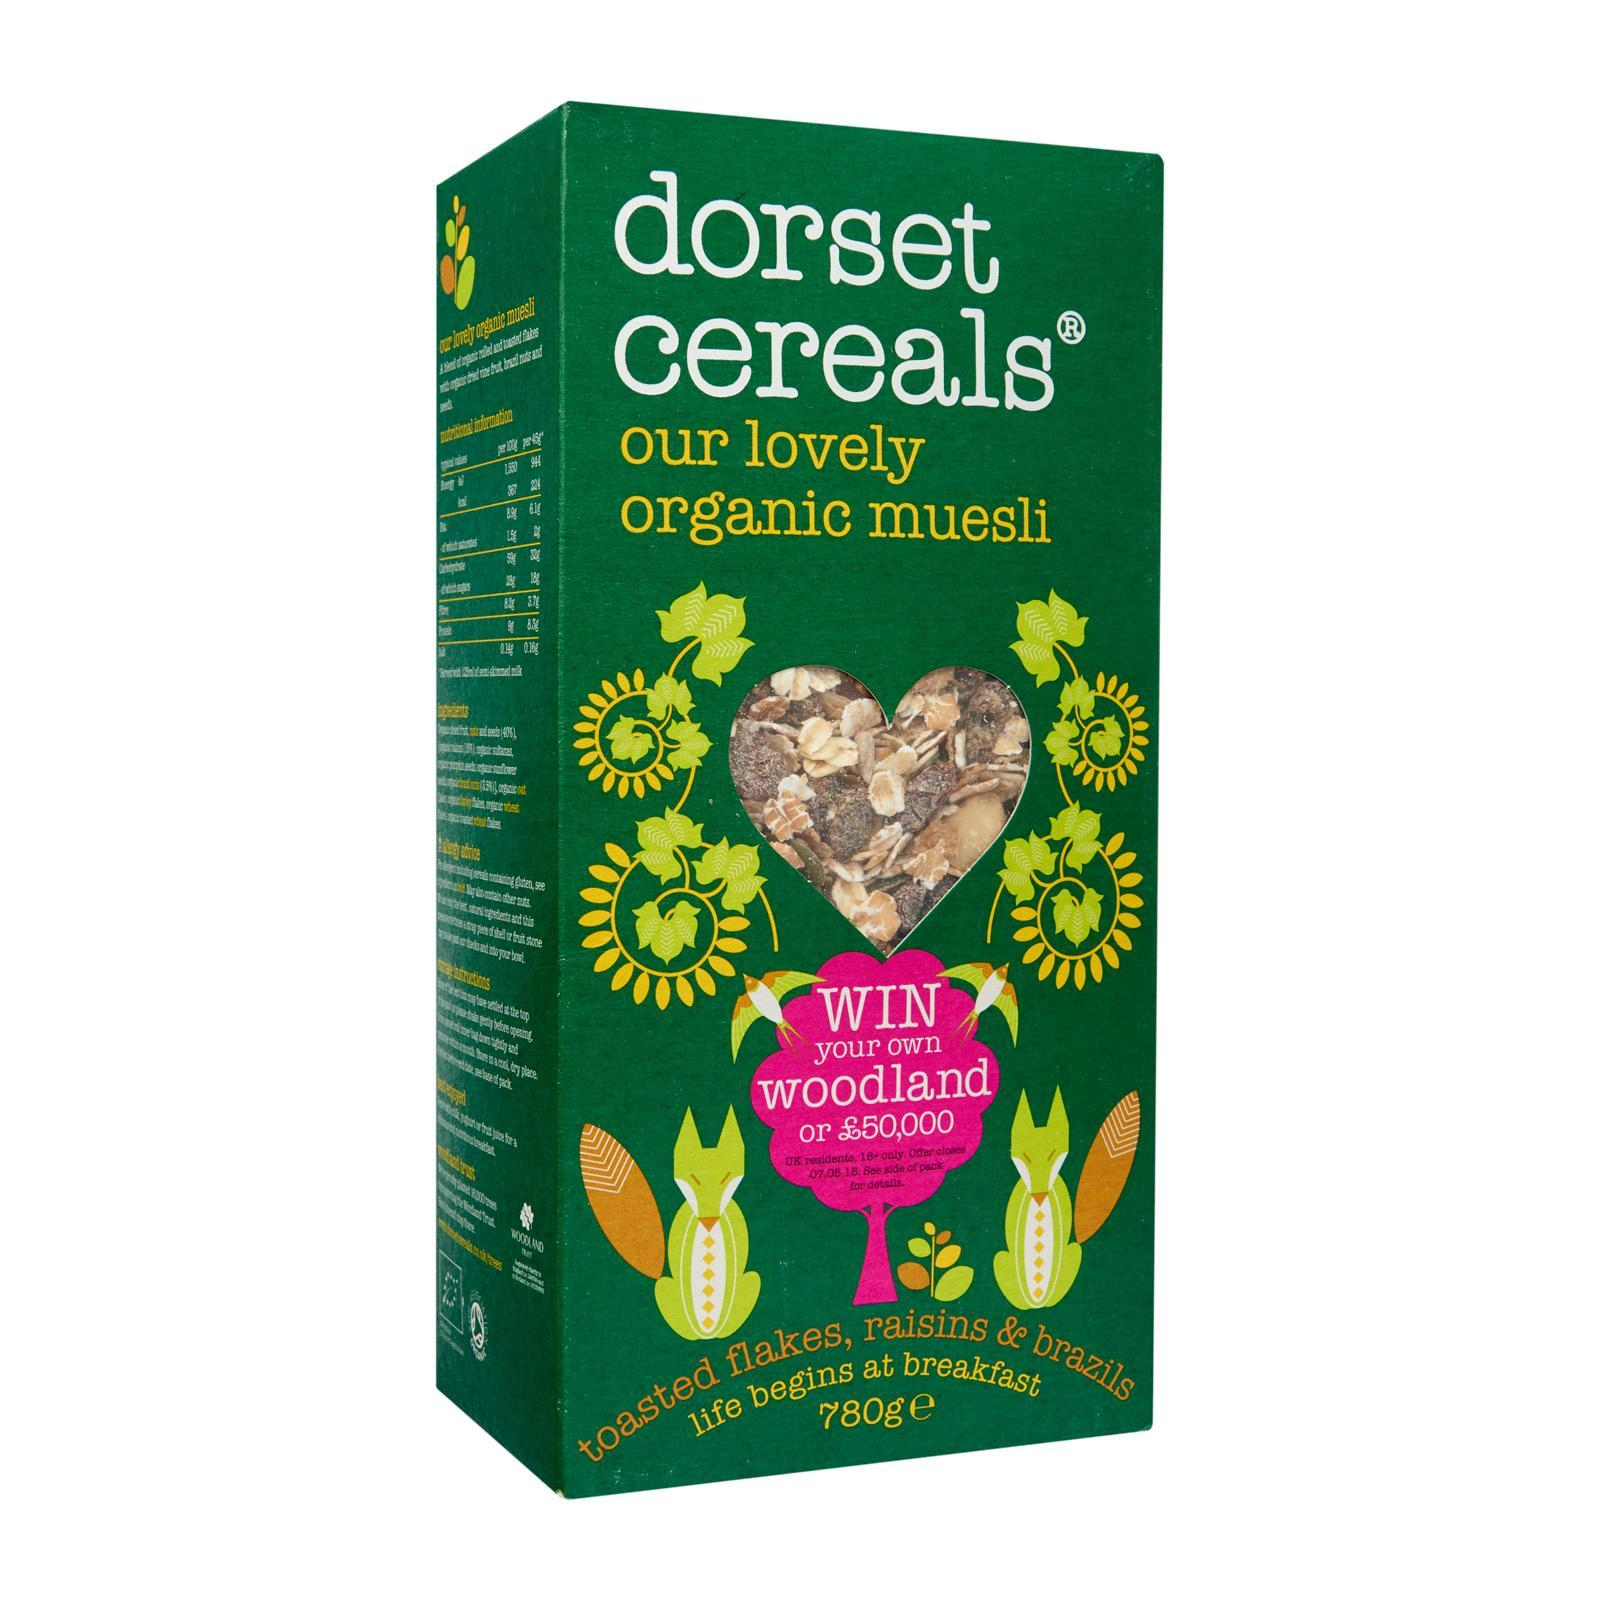 Dorset Cereals Our Lovely Organic Muesli